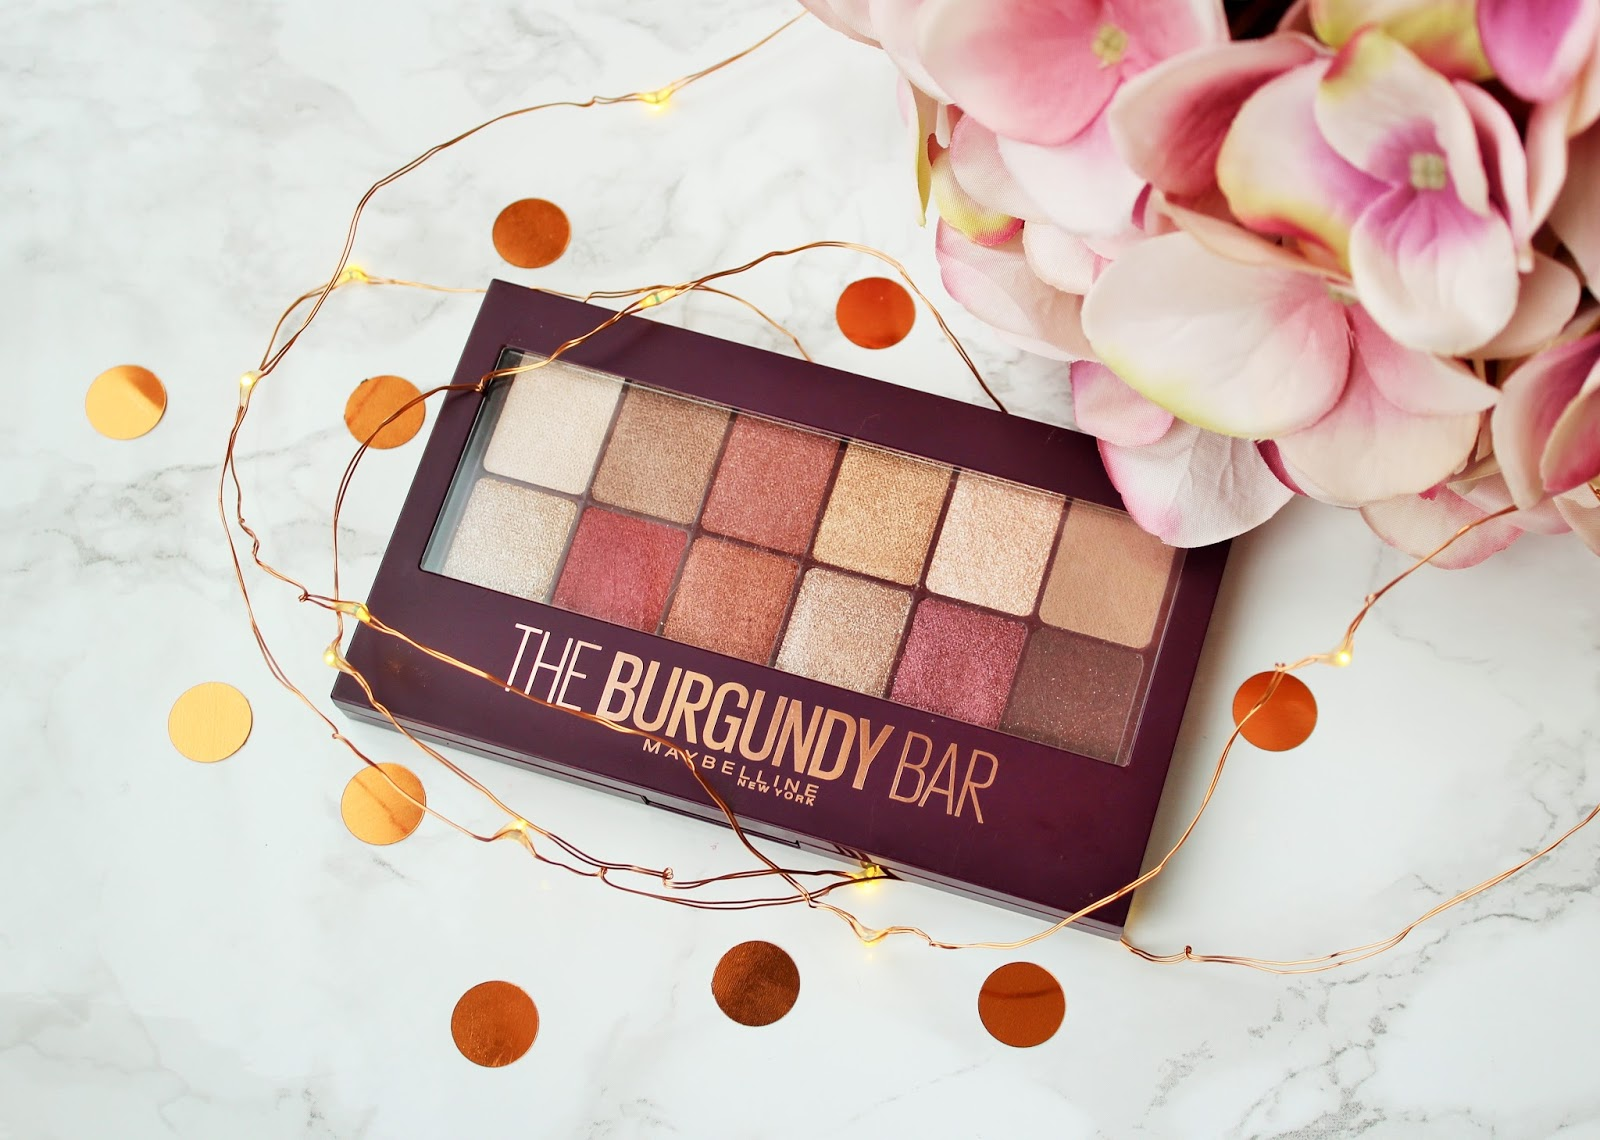 Maybelline The Burgundy Bar Eyeshadow Palette Review - 1